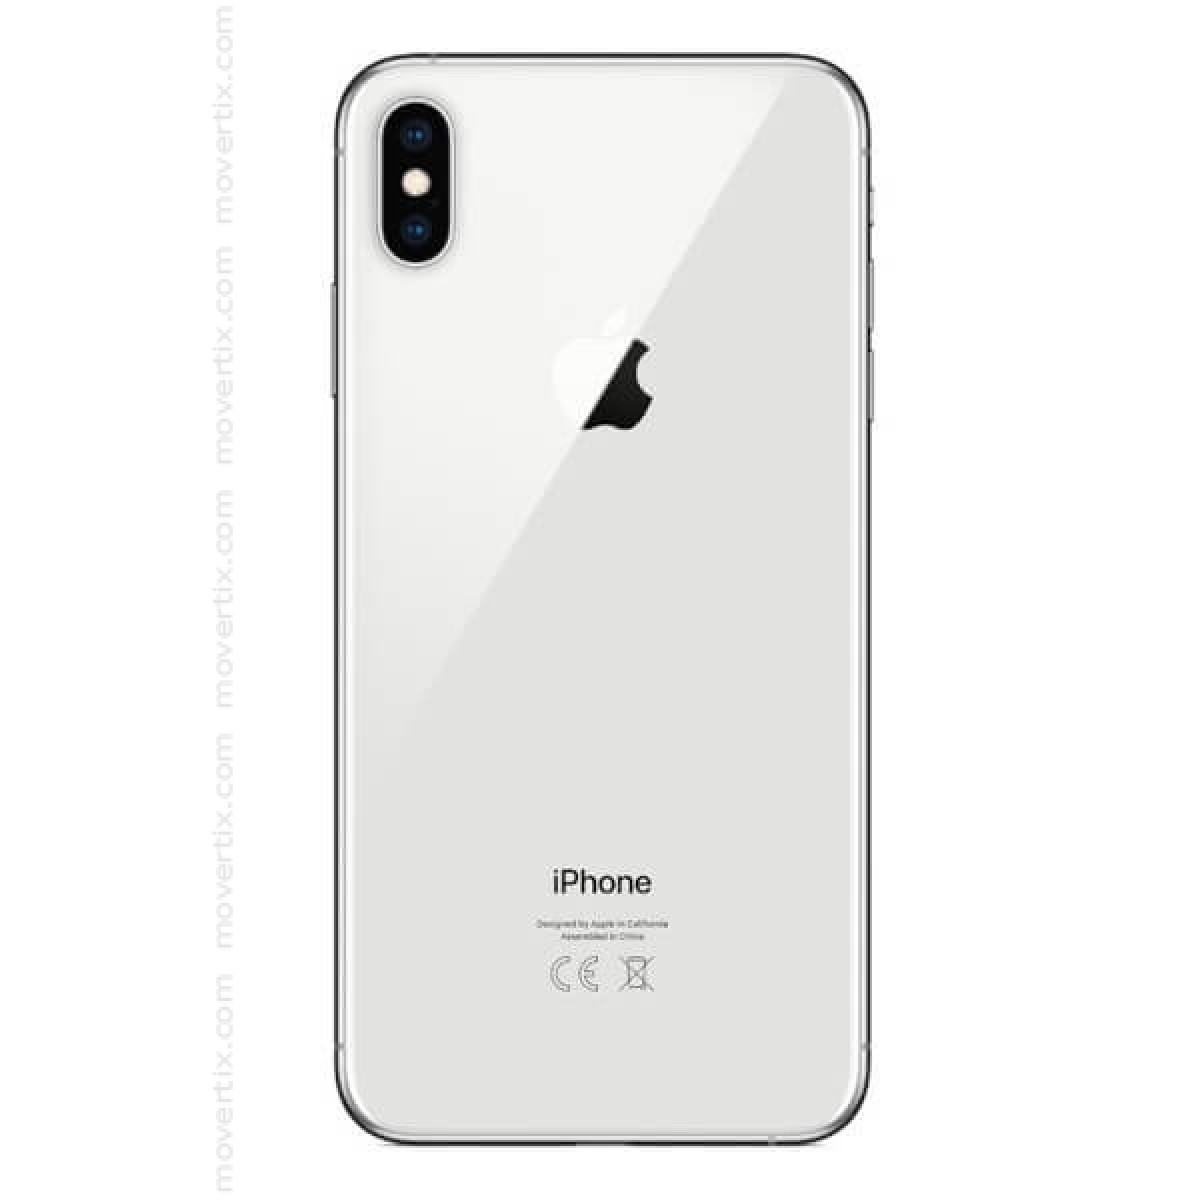 d4519041dc Apple iPhone XS Max Silver 64GB (0190198783516) | Movertix Mobile Phones  Shop